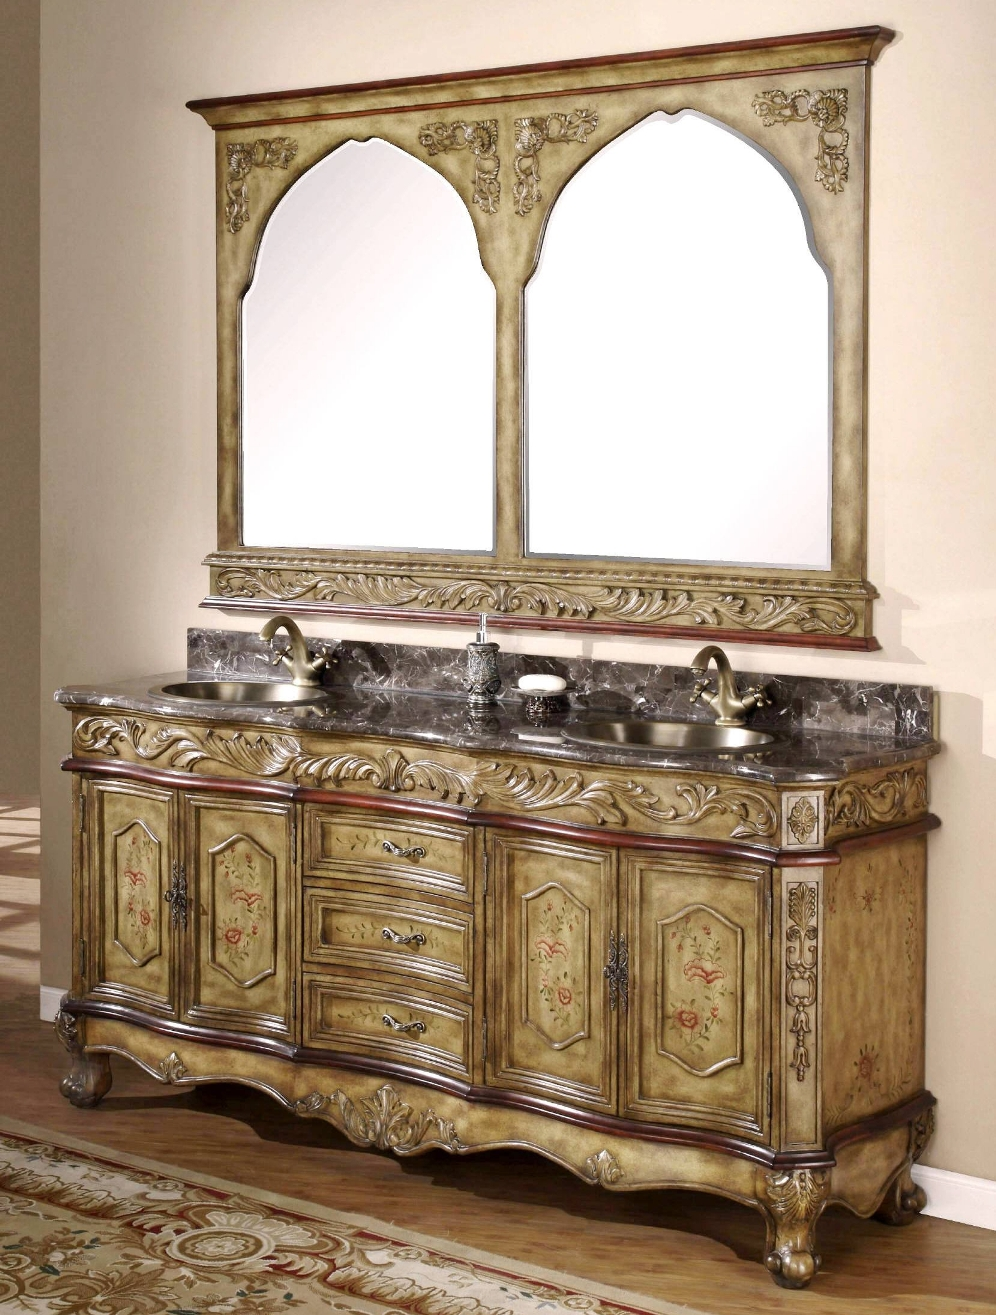 Castille Old World Fashion Bathroom Vanity All Door Hardware Is Included Faucets Sold Separate See Faucet Selections Below